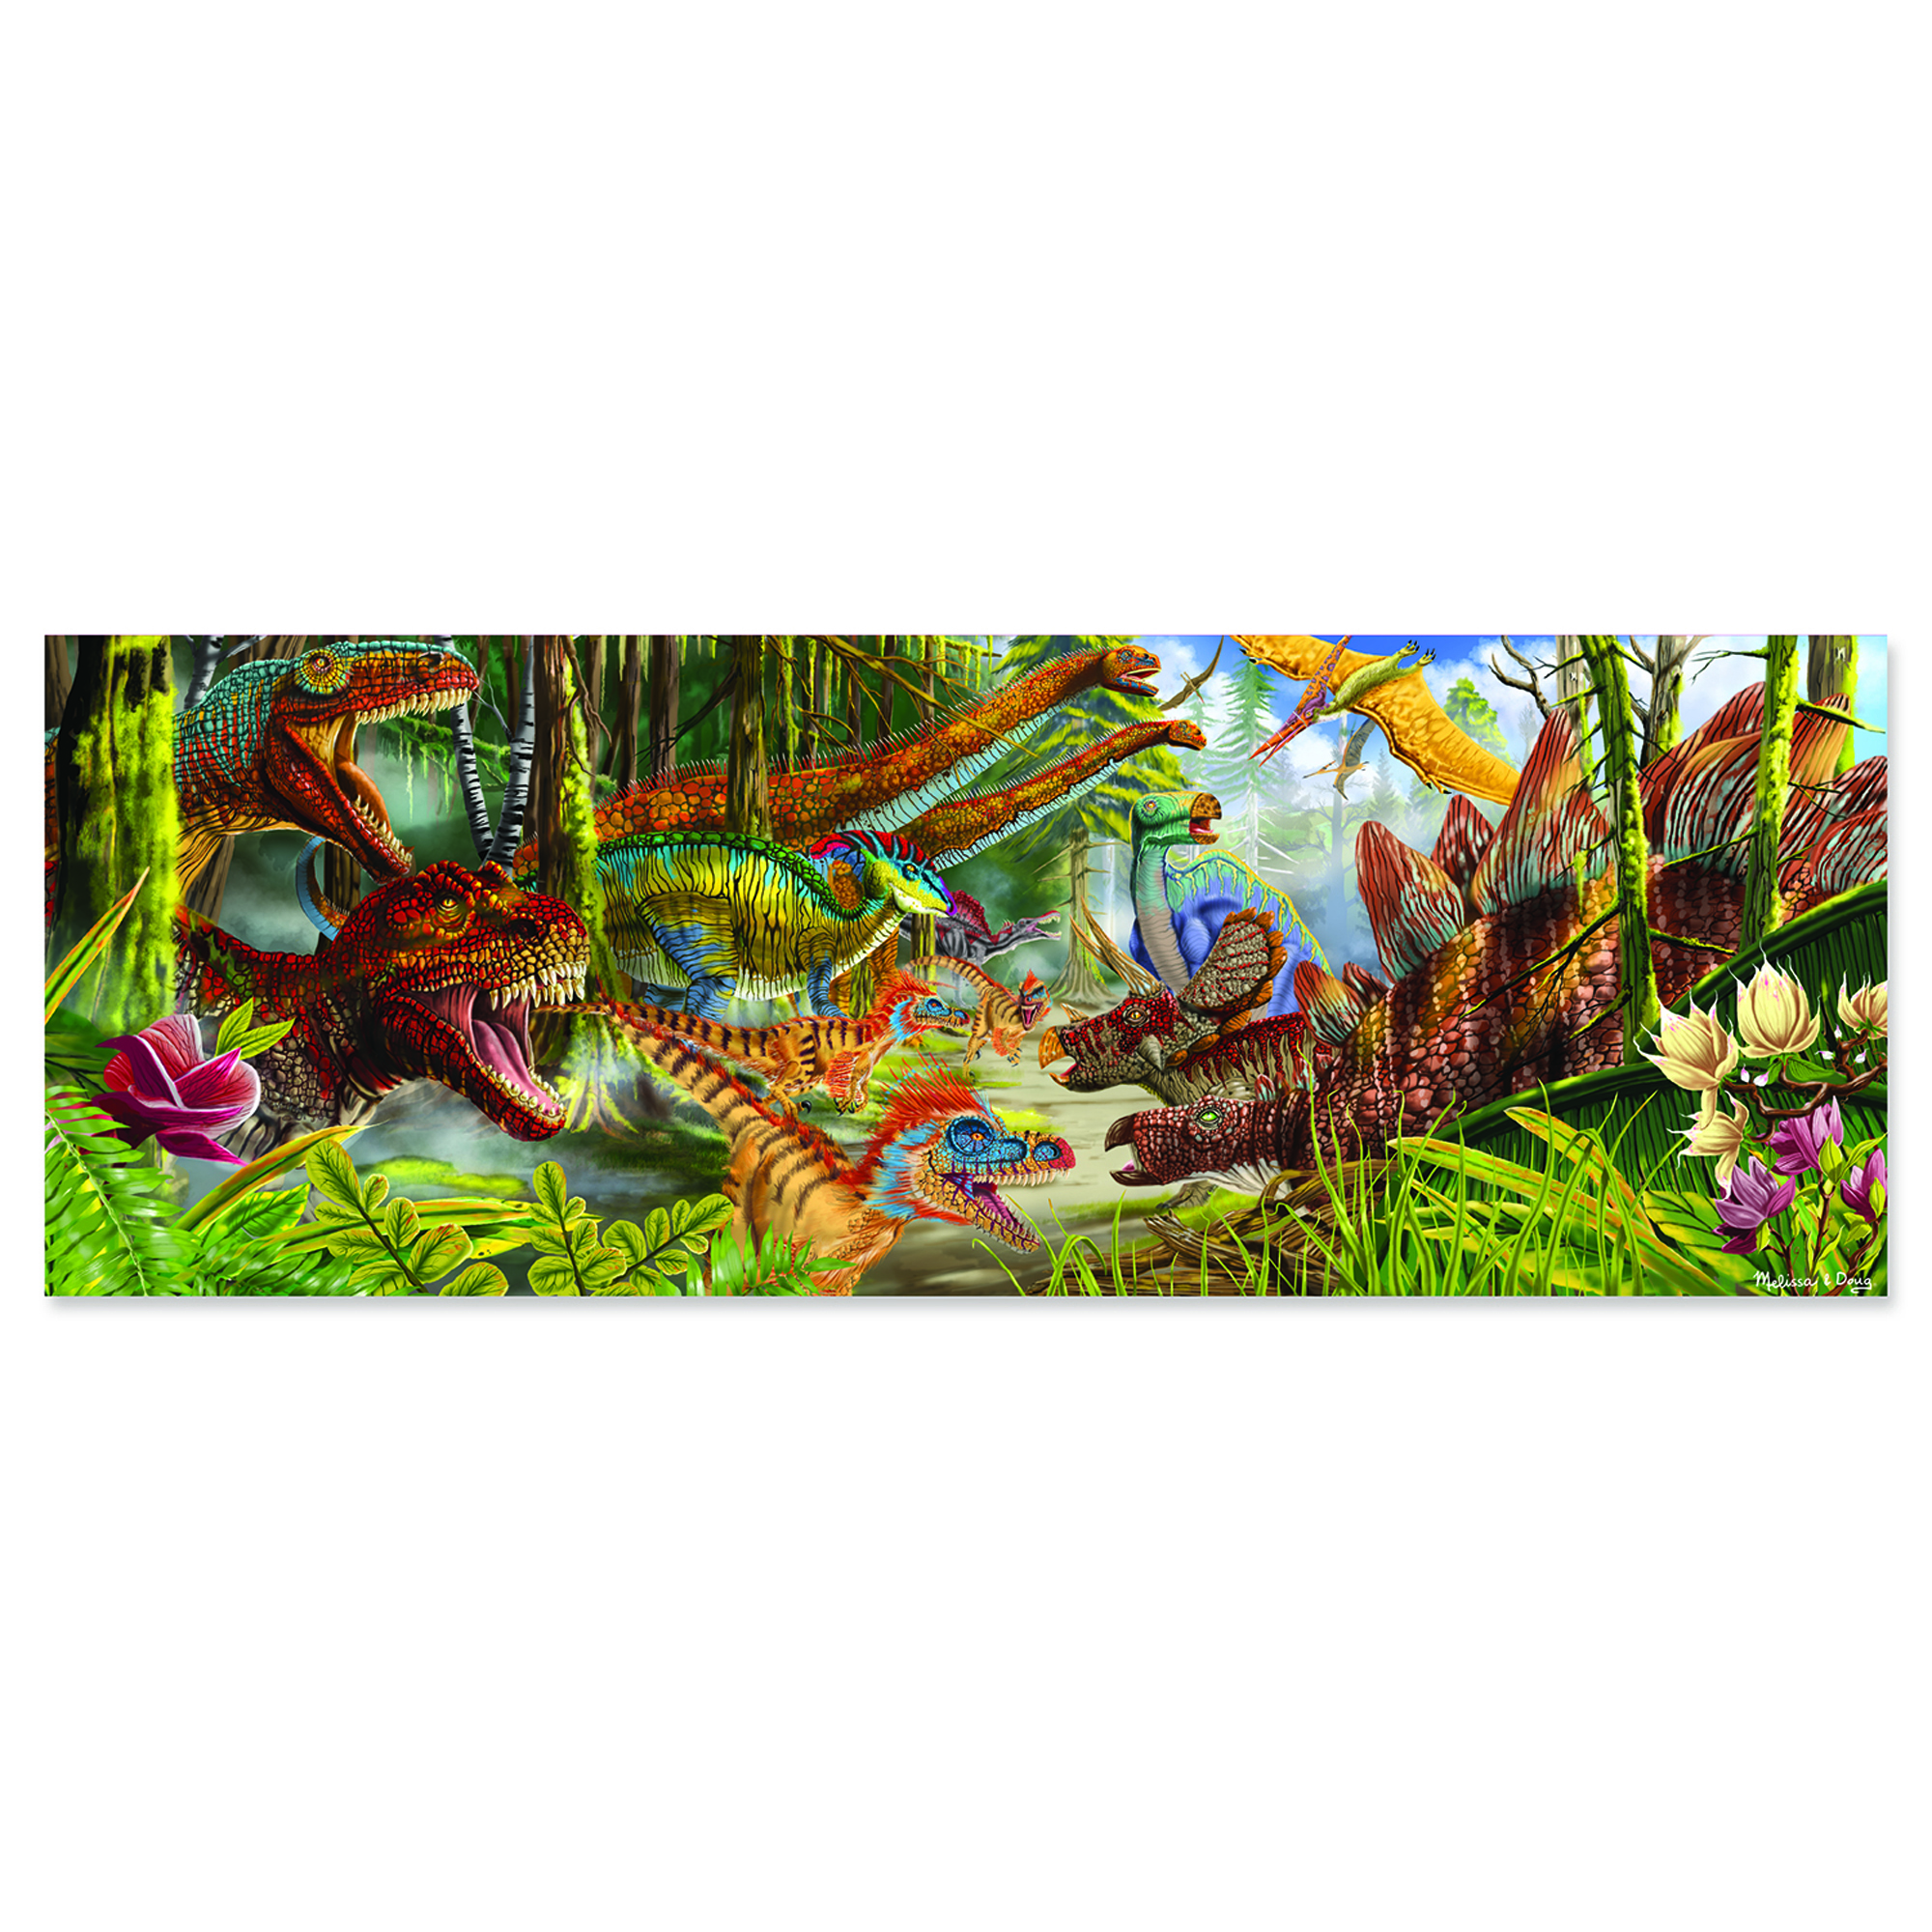 """Get a glimpse into prehistoric times with this 200-piece cardboard jig-saw puzzle. Complete the more than four-foot-long rectangular puzzle and use the included picture key to identify all 10 dinosaurs featured in the dramatic and colorful scene. The """"Easy Clean"""" surface keeps the puzzle looking like new. 50"""" x 18"""" assembled"""